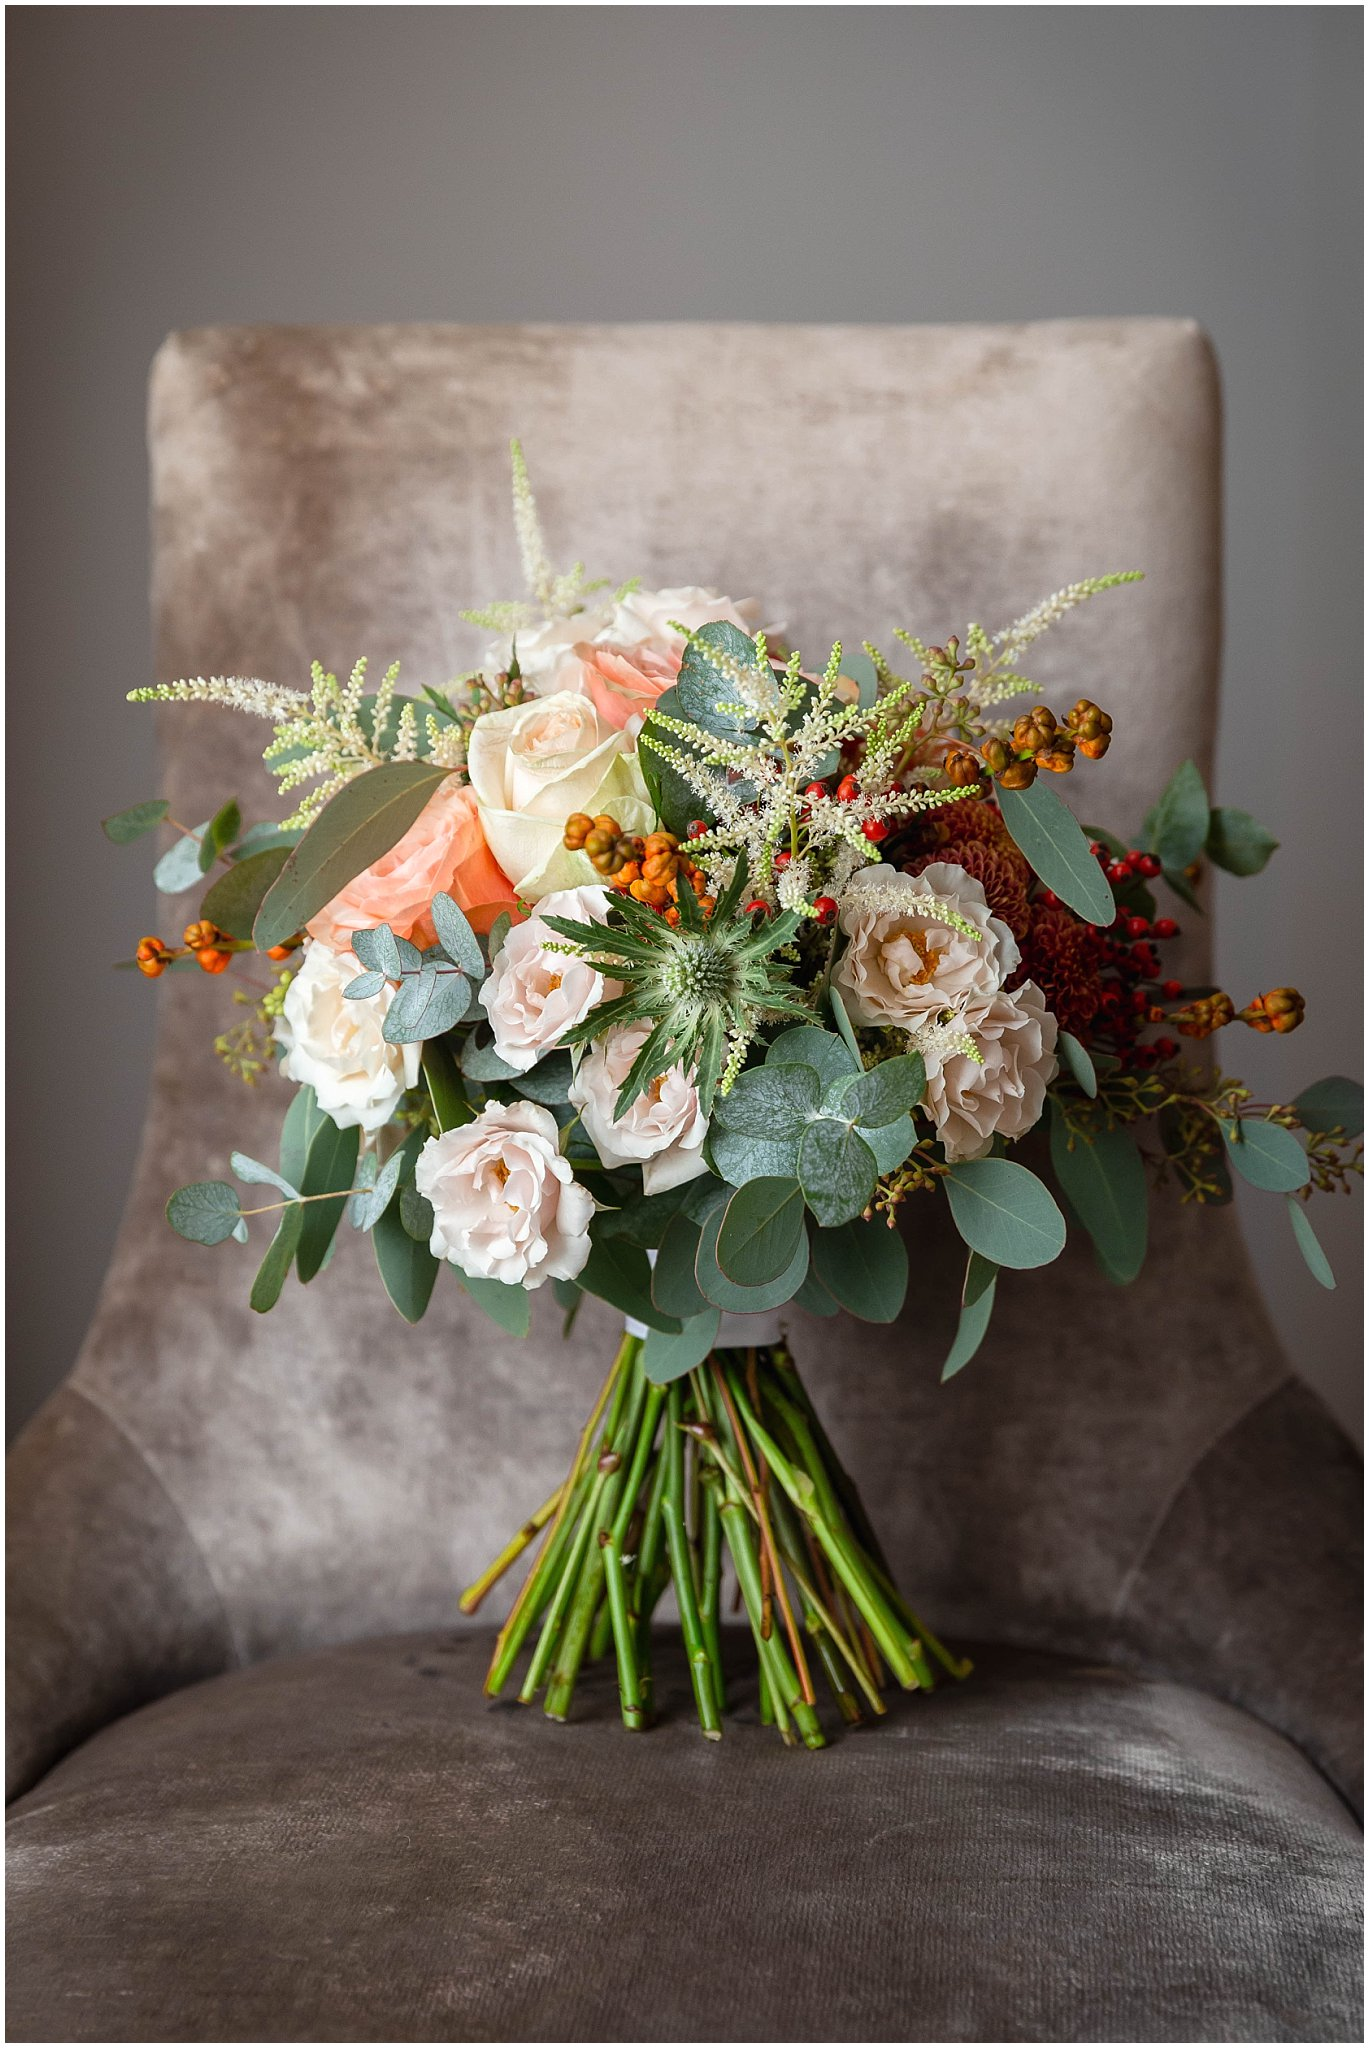 Autumn wedding flowers Wedding photos kent